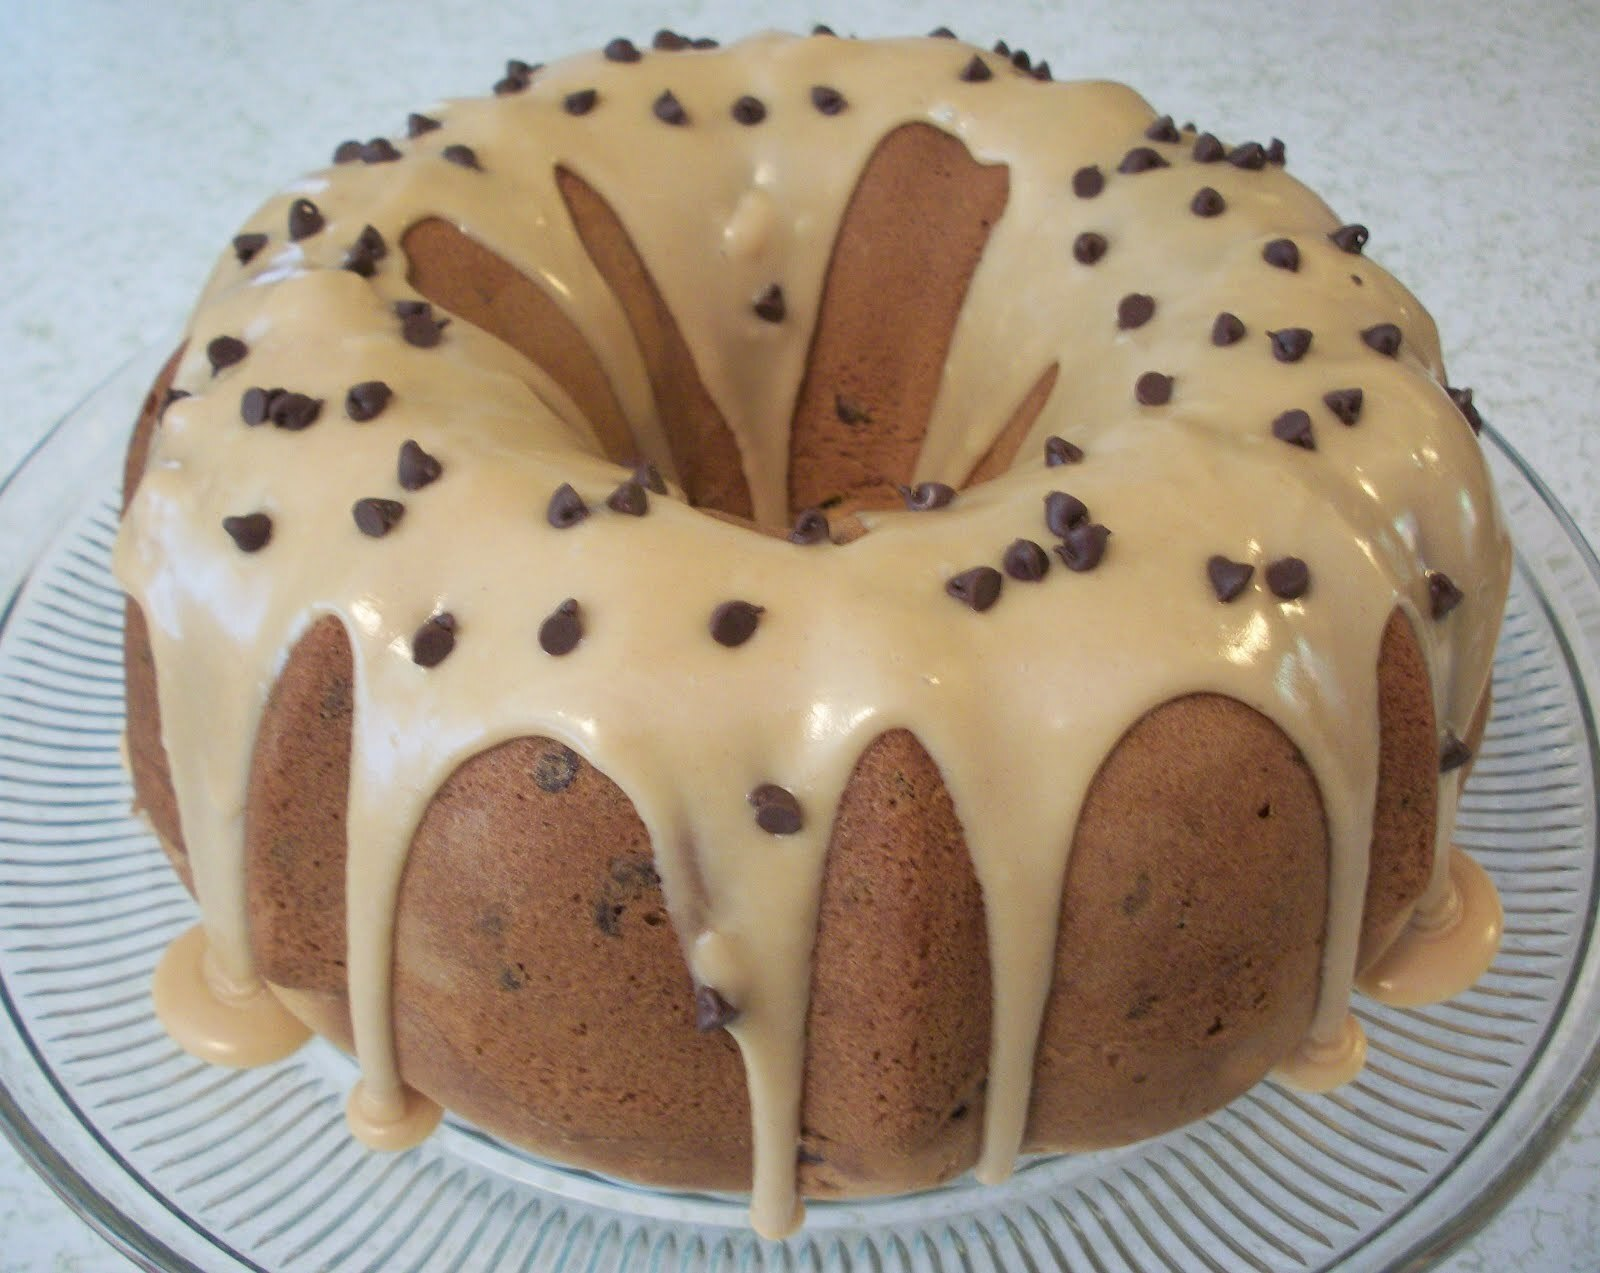 Peanut Butter Chocolate Chip Bundt Cake